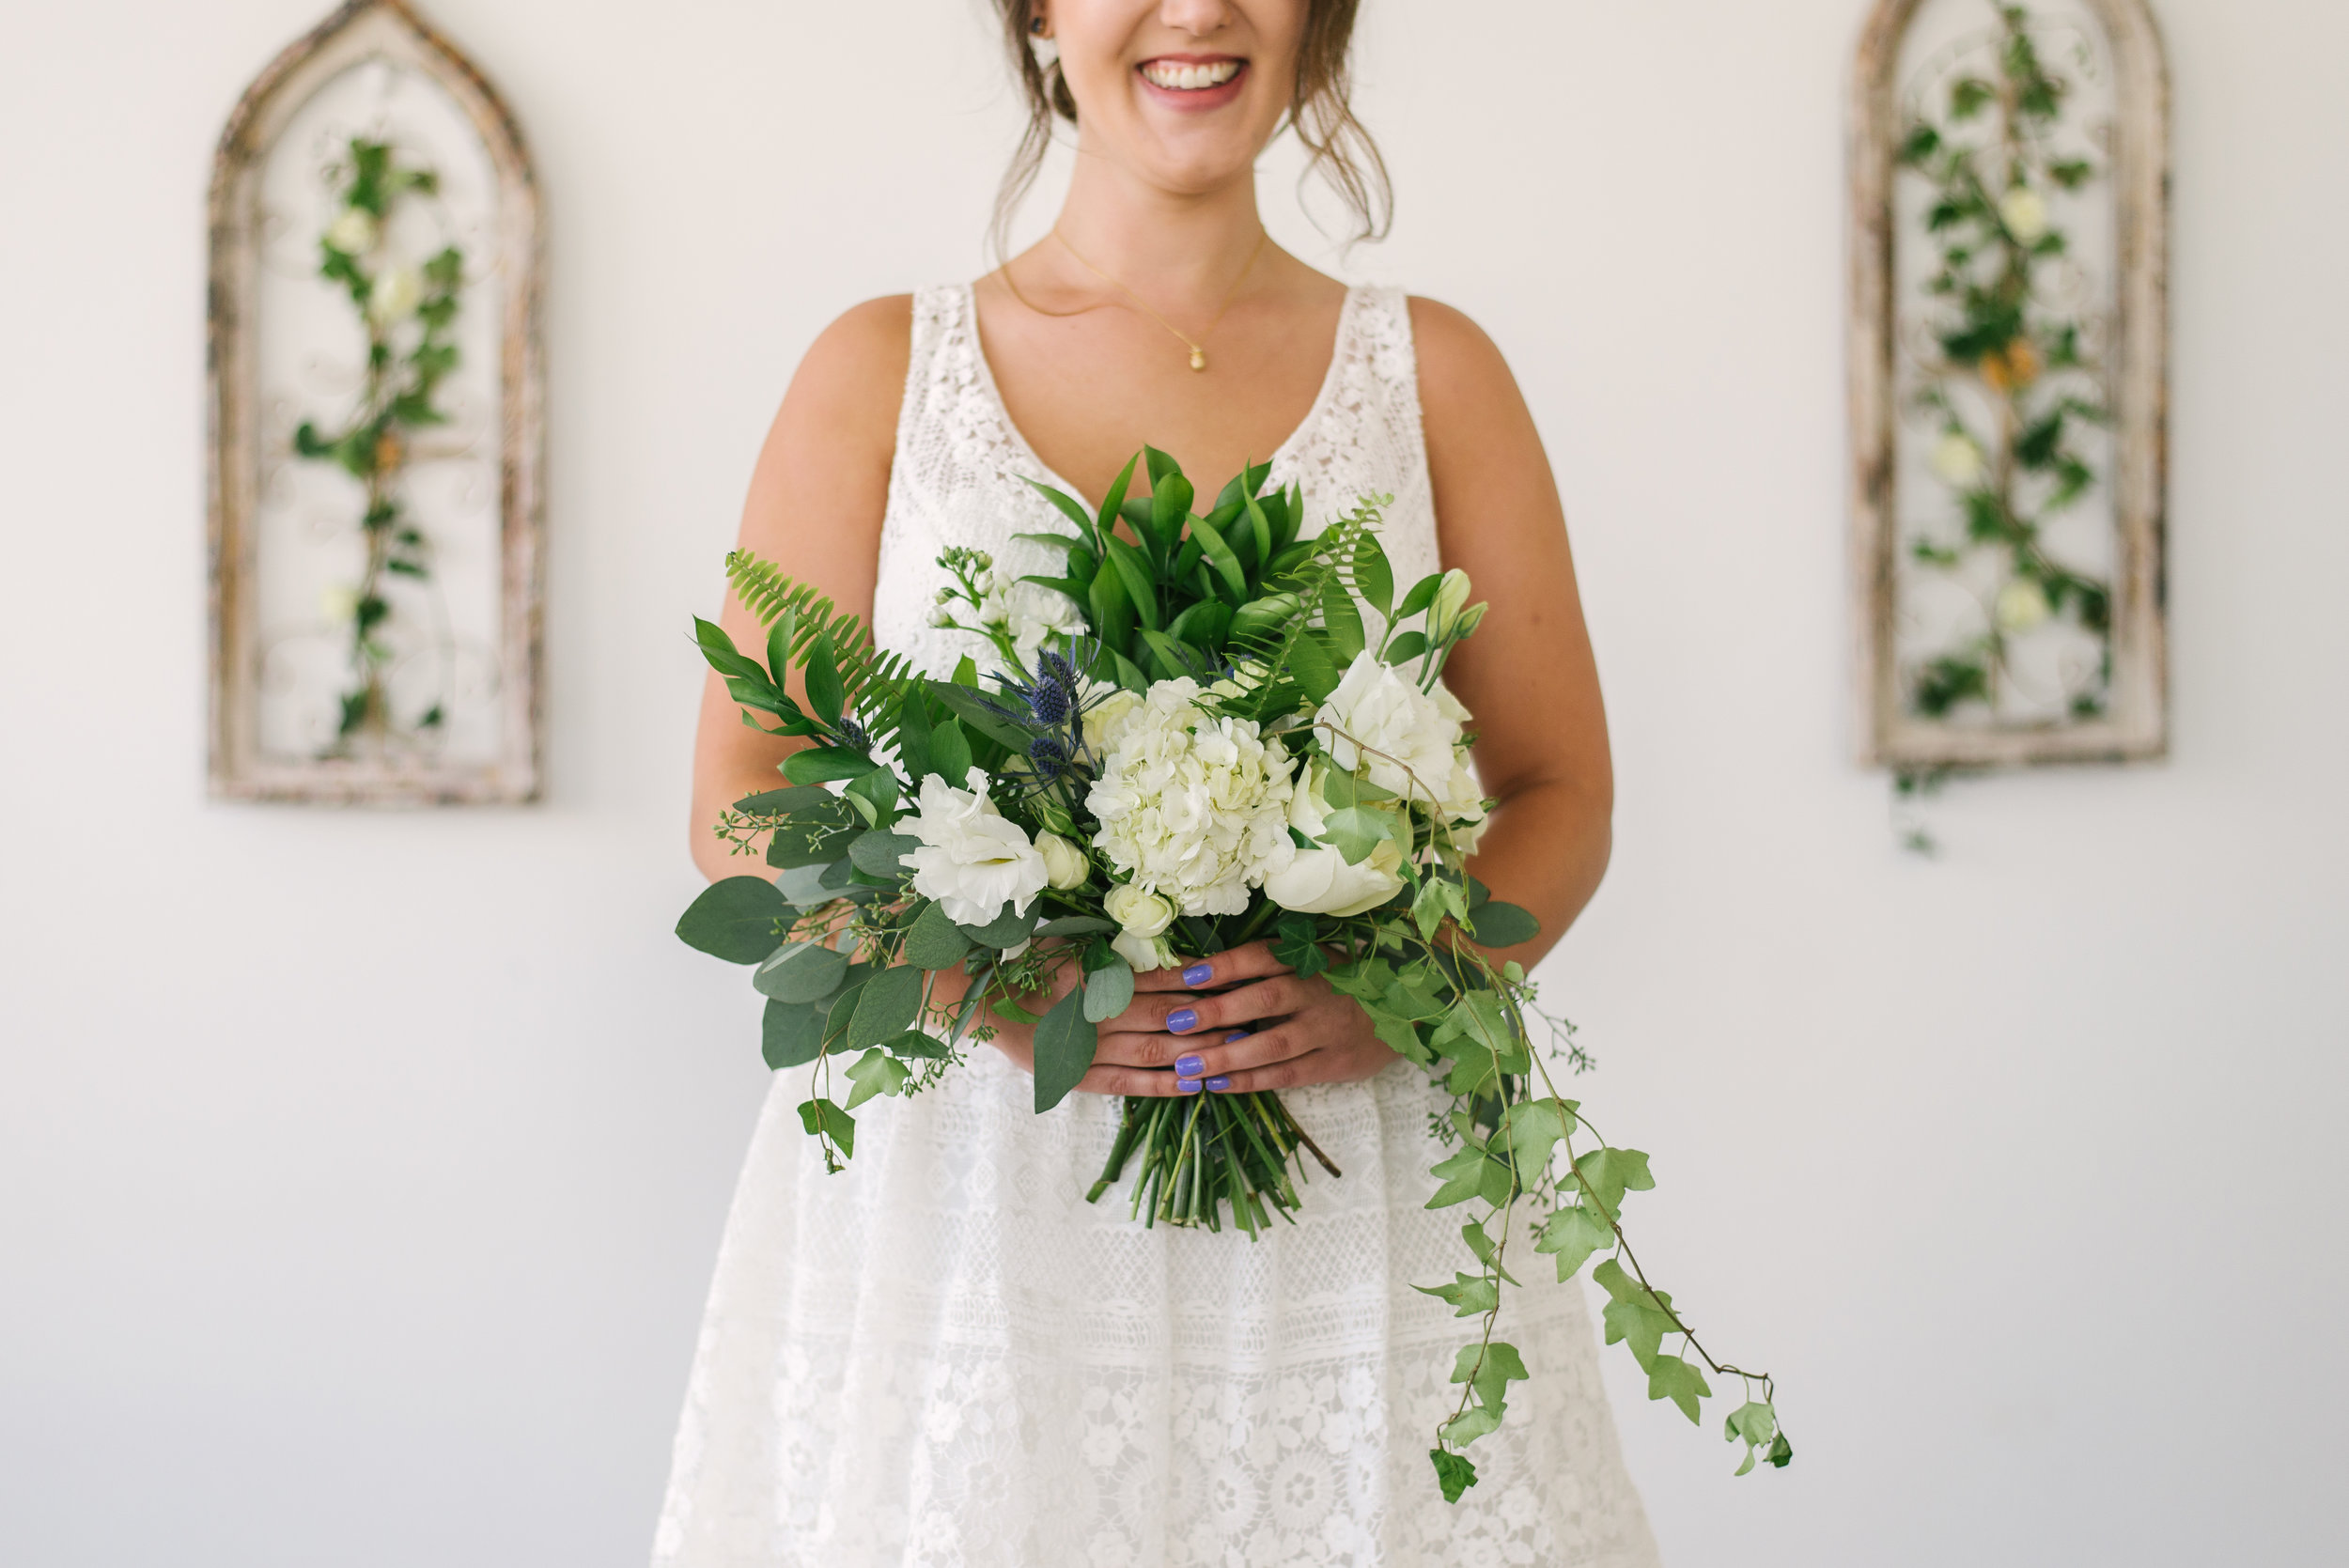 Charlotte Bridal Portrait Photographer Brittany Sue Photo Bohemian-193.jpg